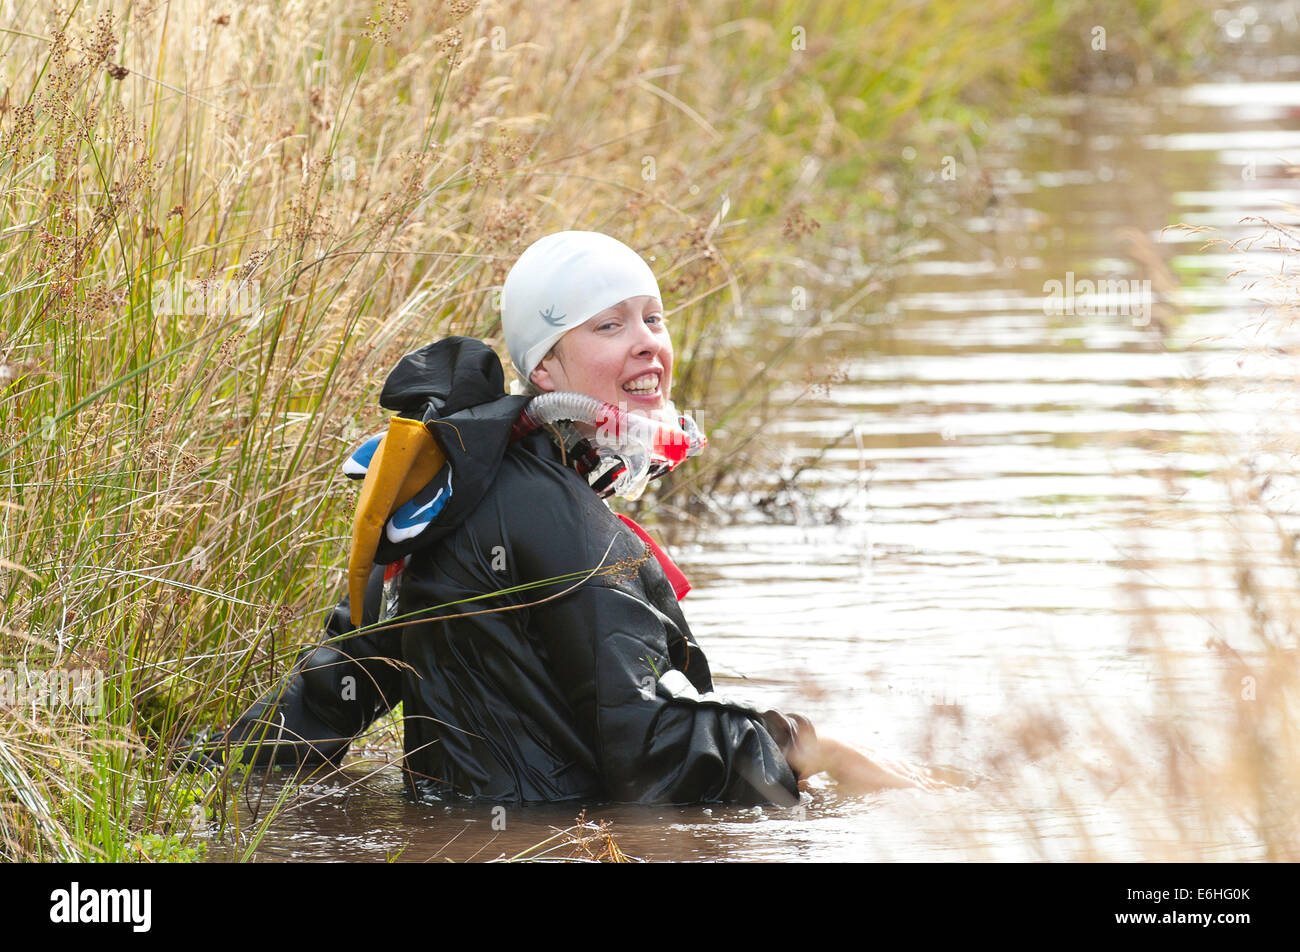 Llanwrtyd Wells, UK. 24th August 2014. Sian Williams 32 from Cardiff enters the cold bog as a penguin water to compete. - Stock Image